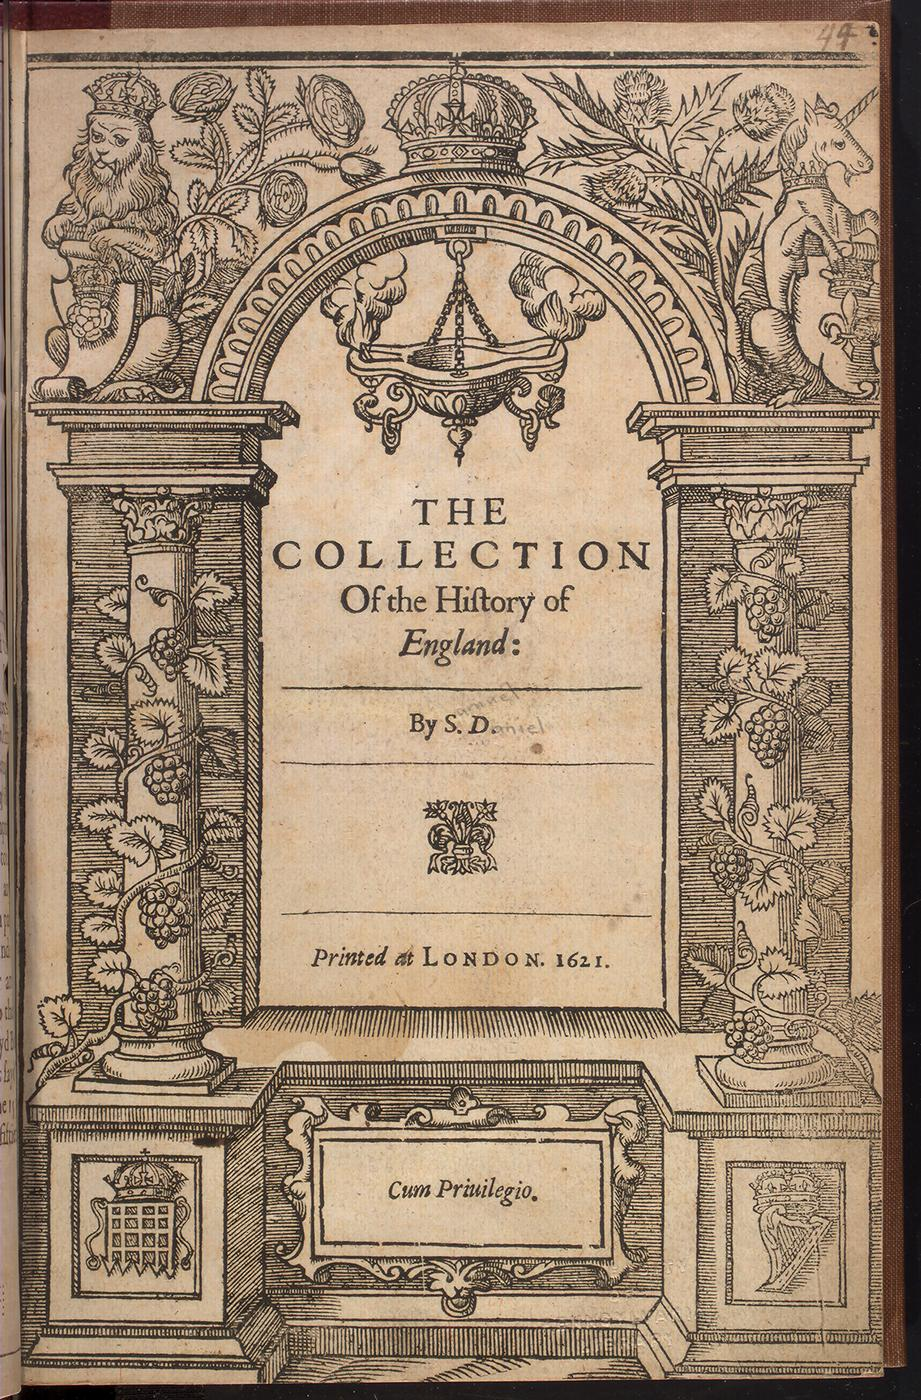 Title page to Samuel Daniel, The Collection of the History of England (London 1621)